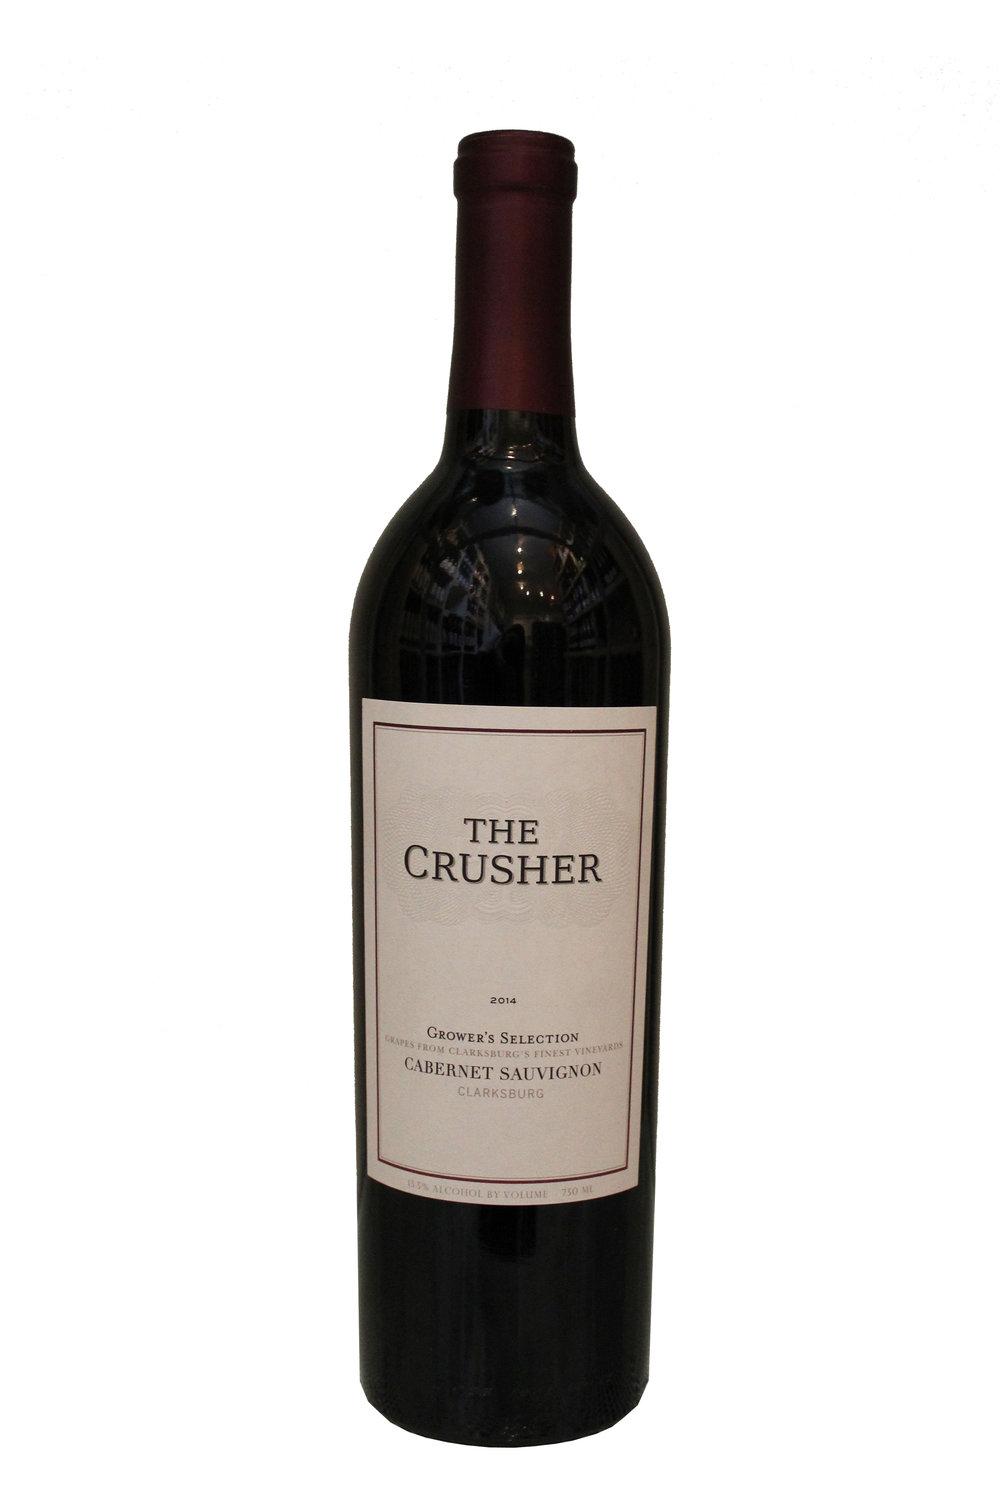 Cabernet Sauvignon The Crusher, California